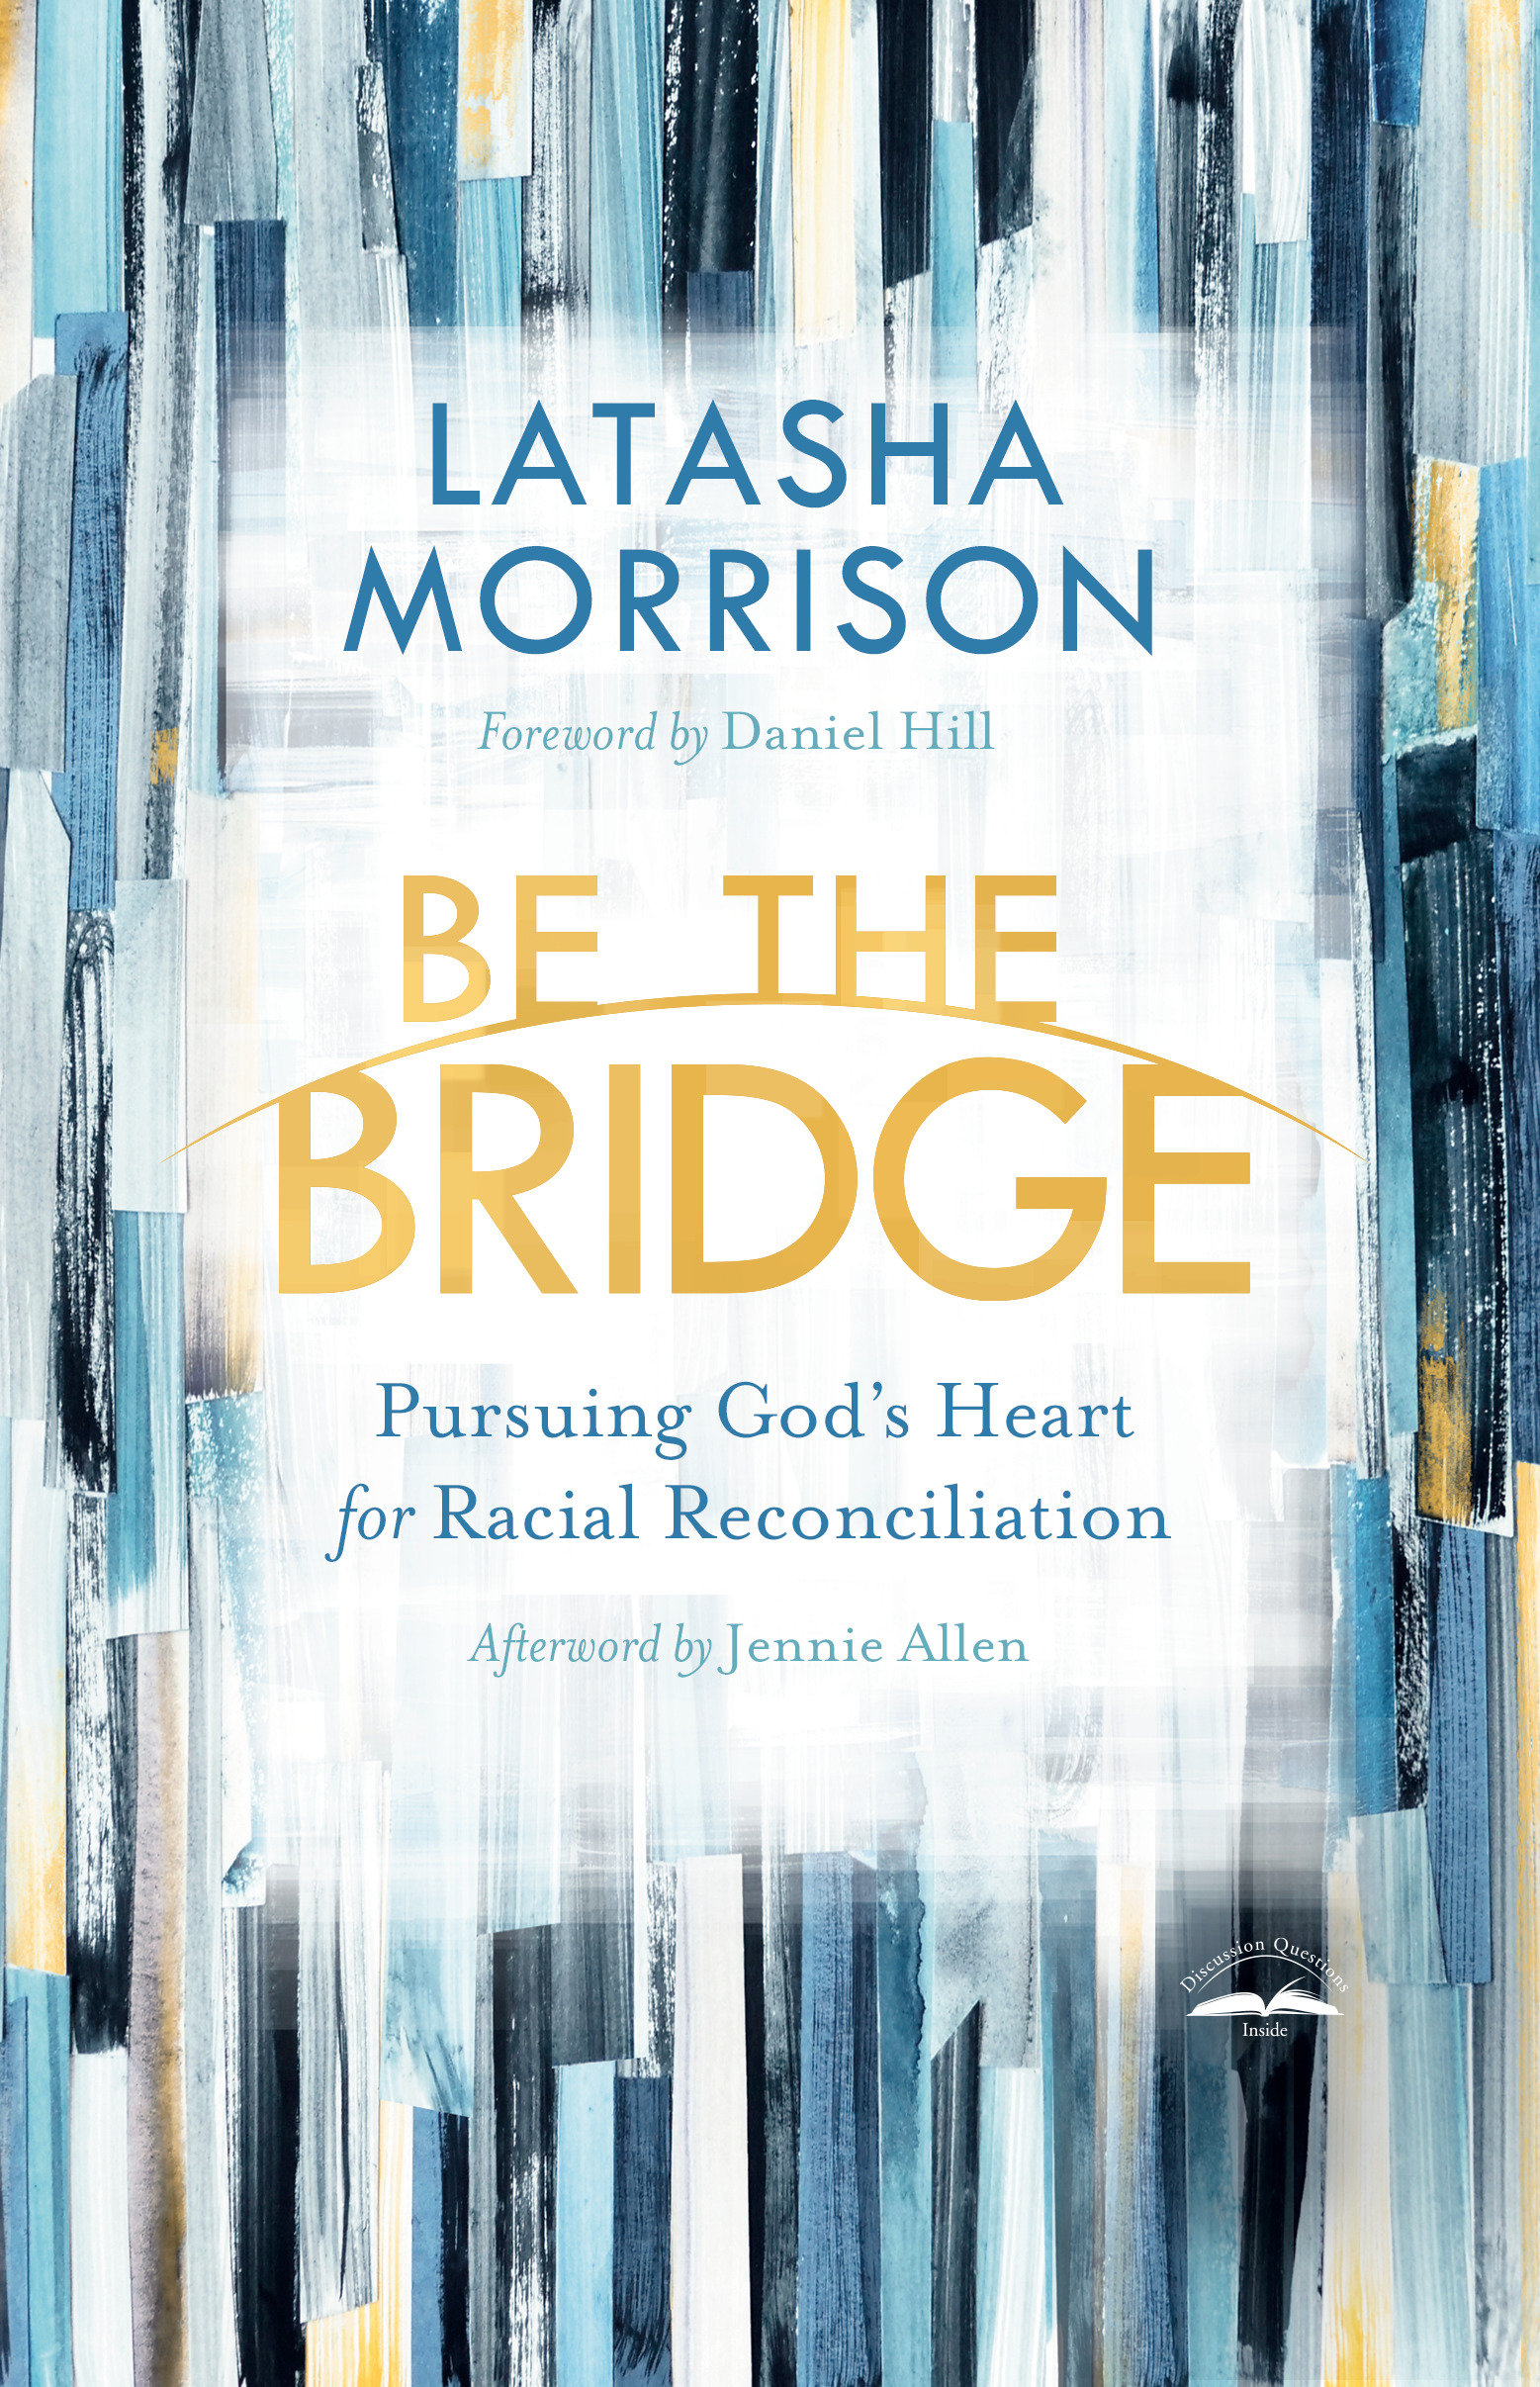 Be the Bridge Pursuing God's Heart for Racial Reconciliation